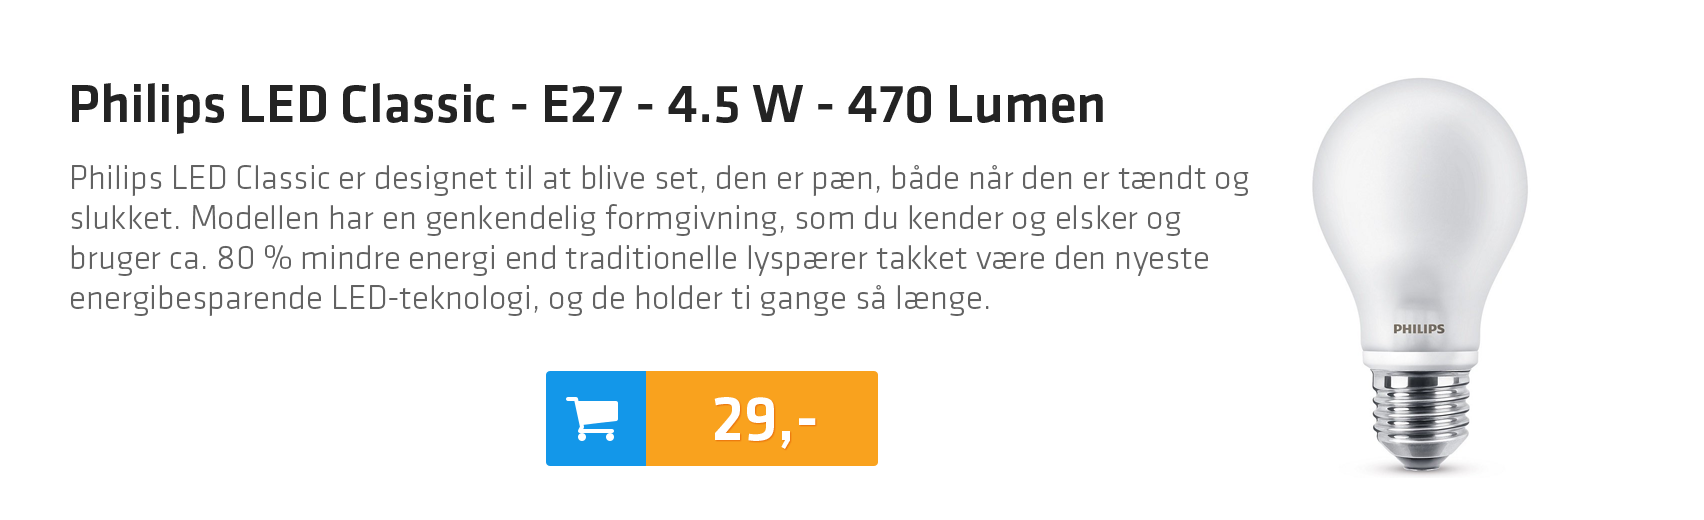 Philips LED Classic - E27 - 4.5 W - 470 Lumen